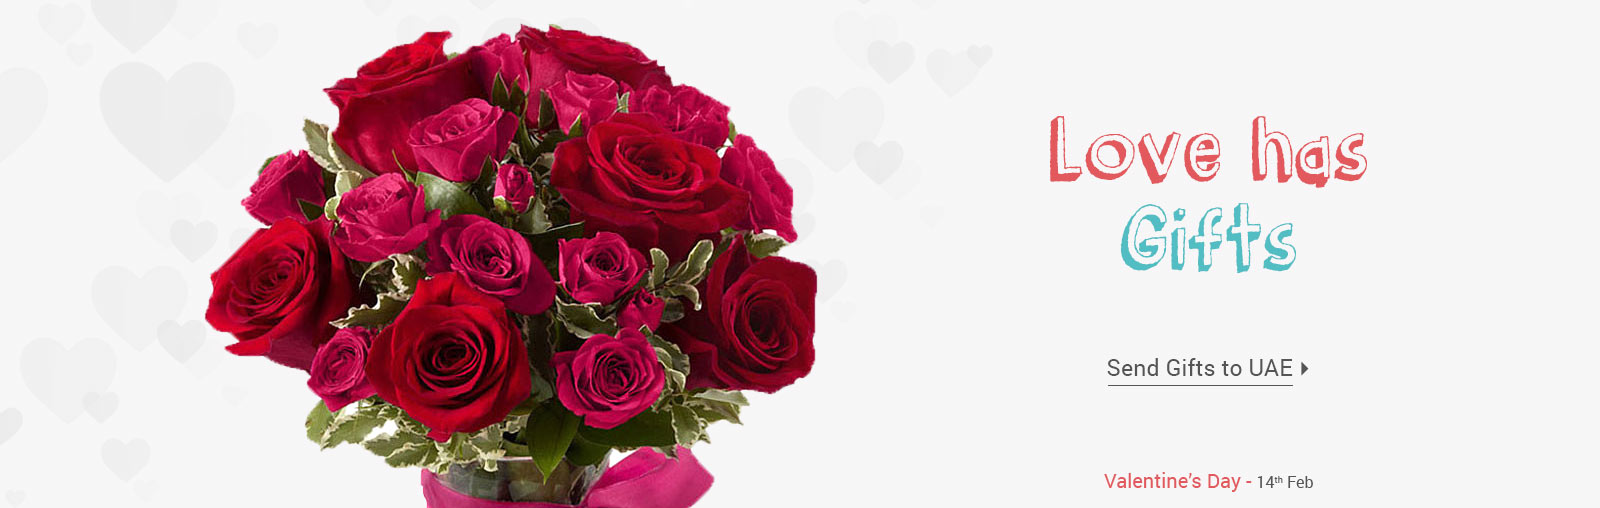 Cheap flower delivery in abu dhabi image collections flower cheap flower delivery in abu dhabi image collections flower cheap flower delivery in abu dhabi images izmirmasajfo